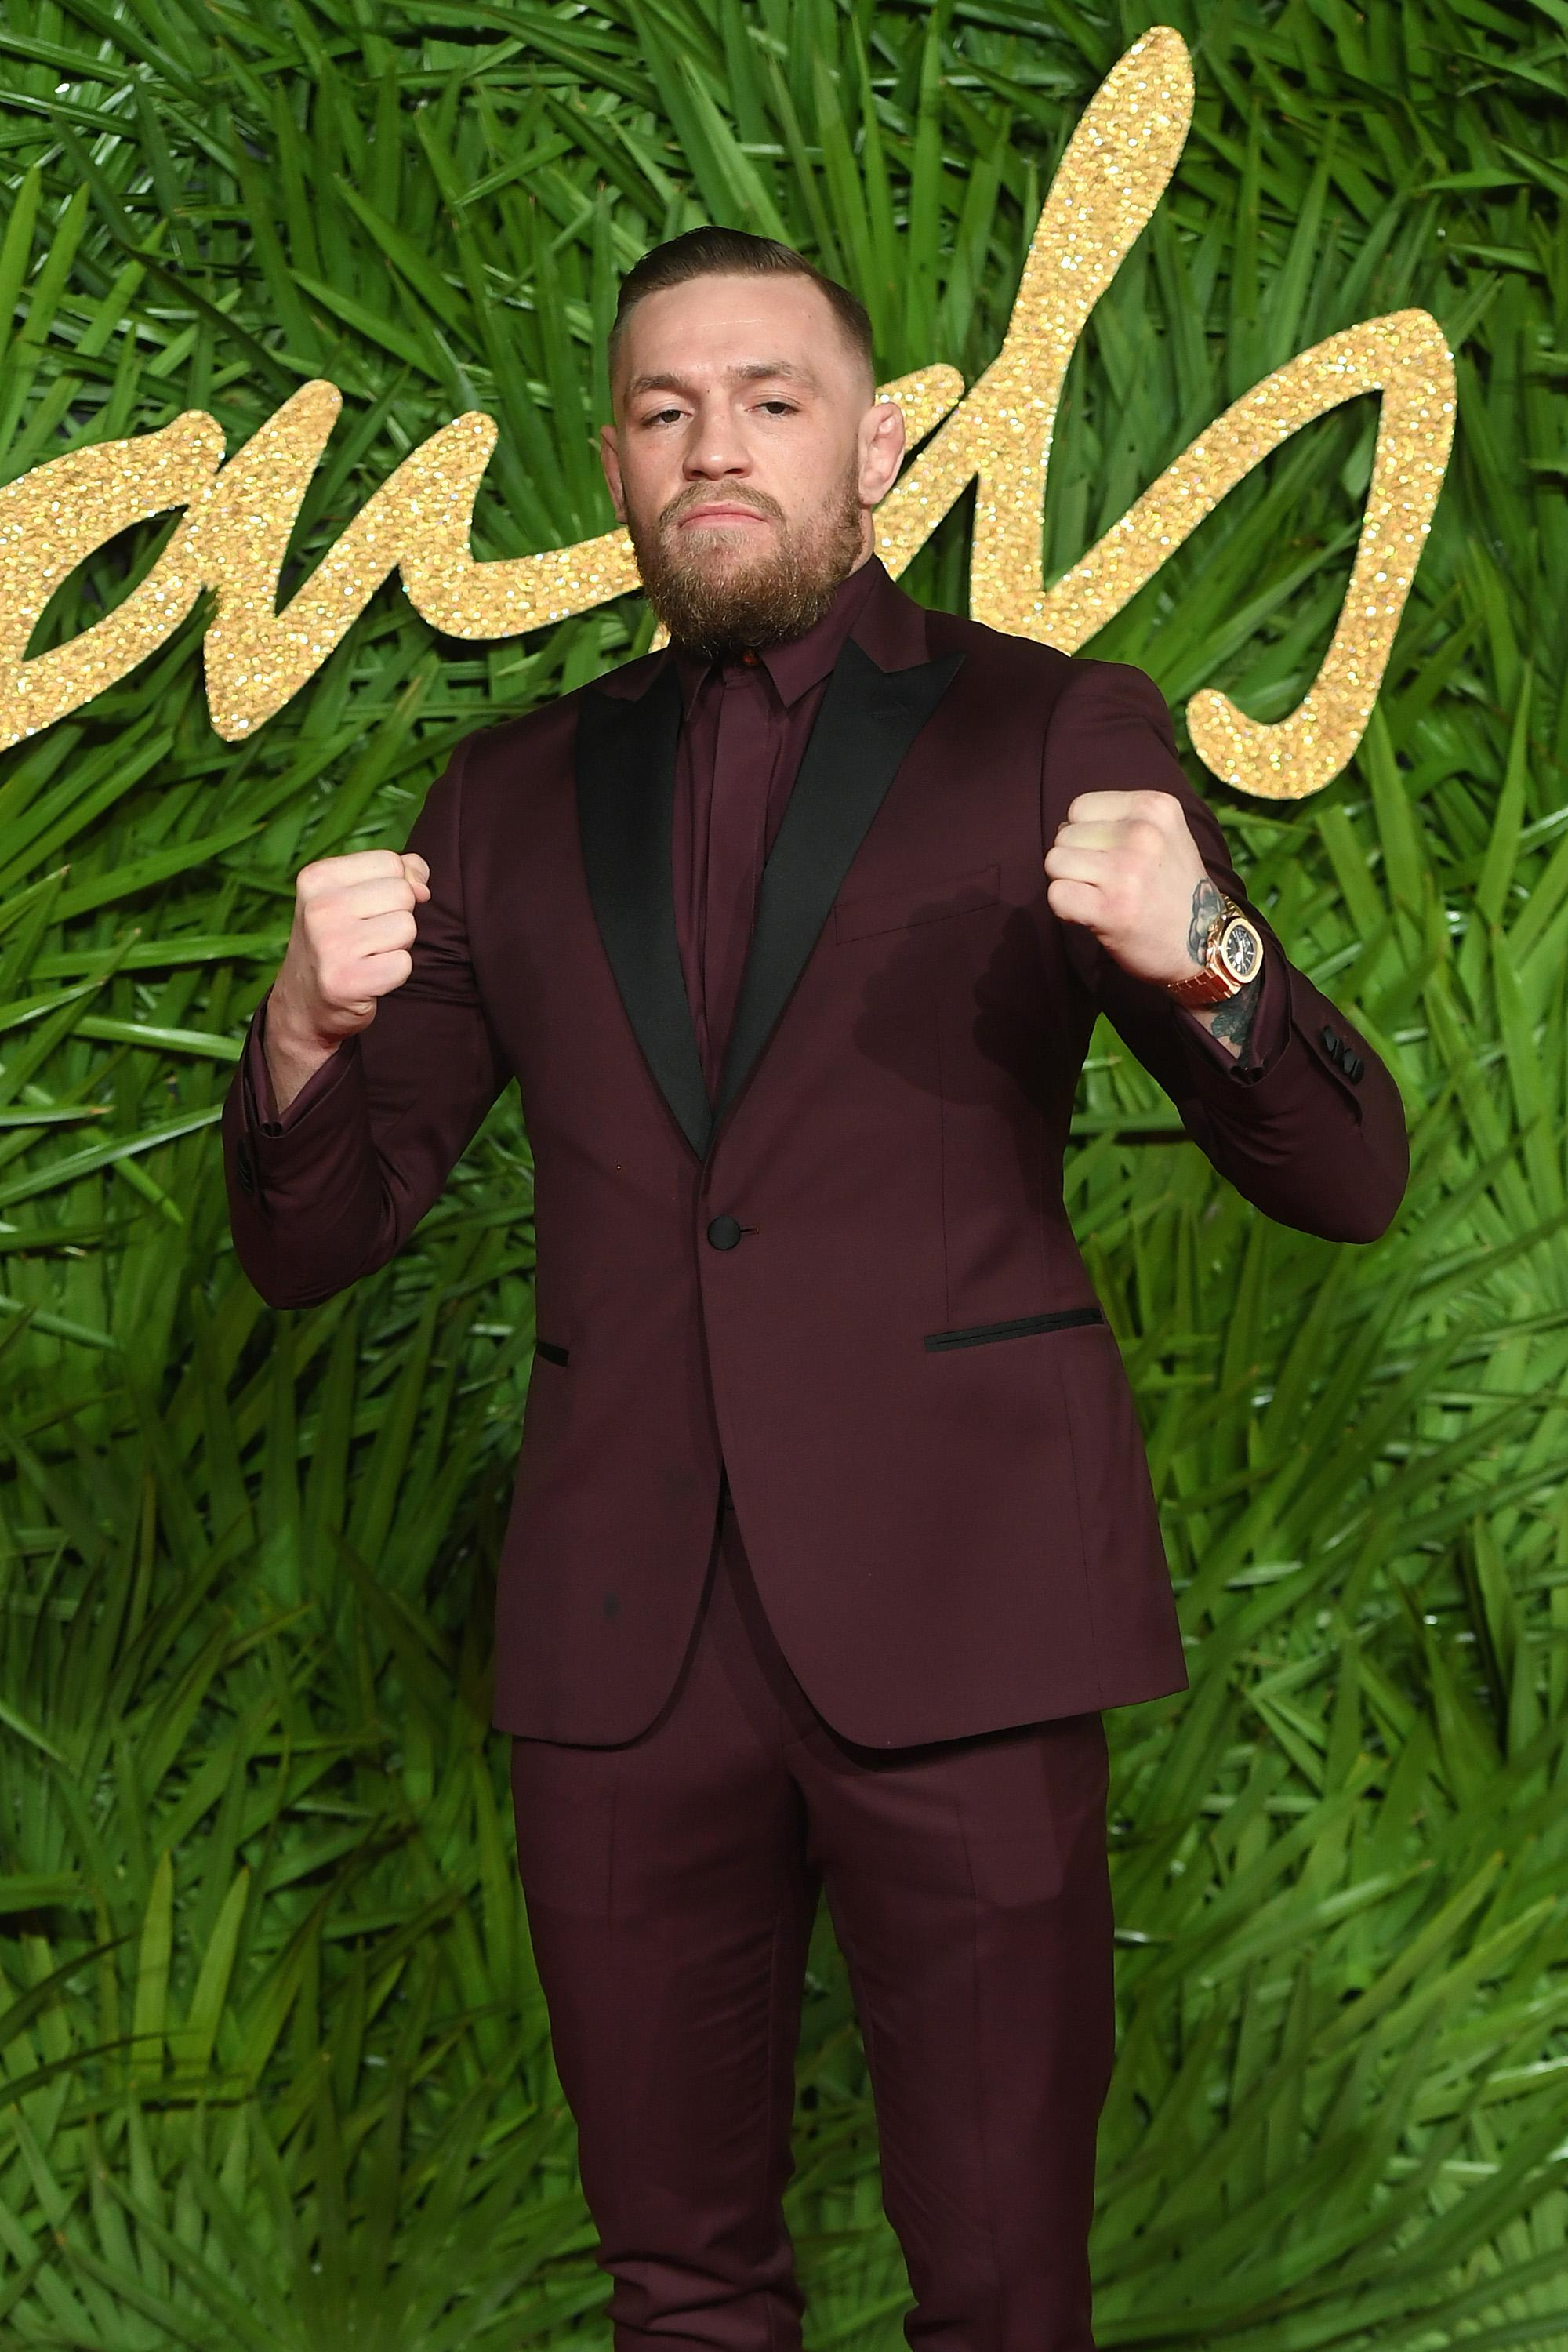 Conor McGregor hasn't fought inside the Octagon since November 2016